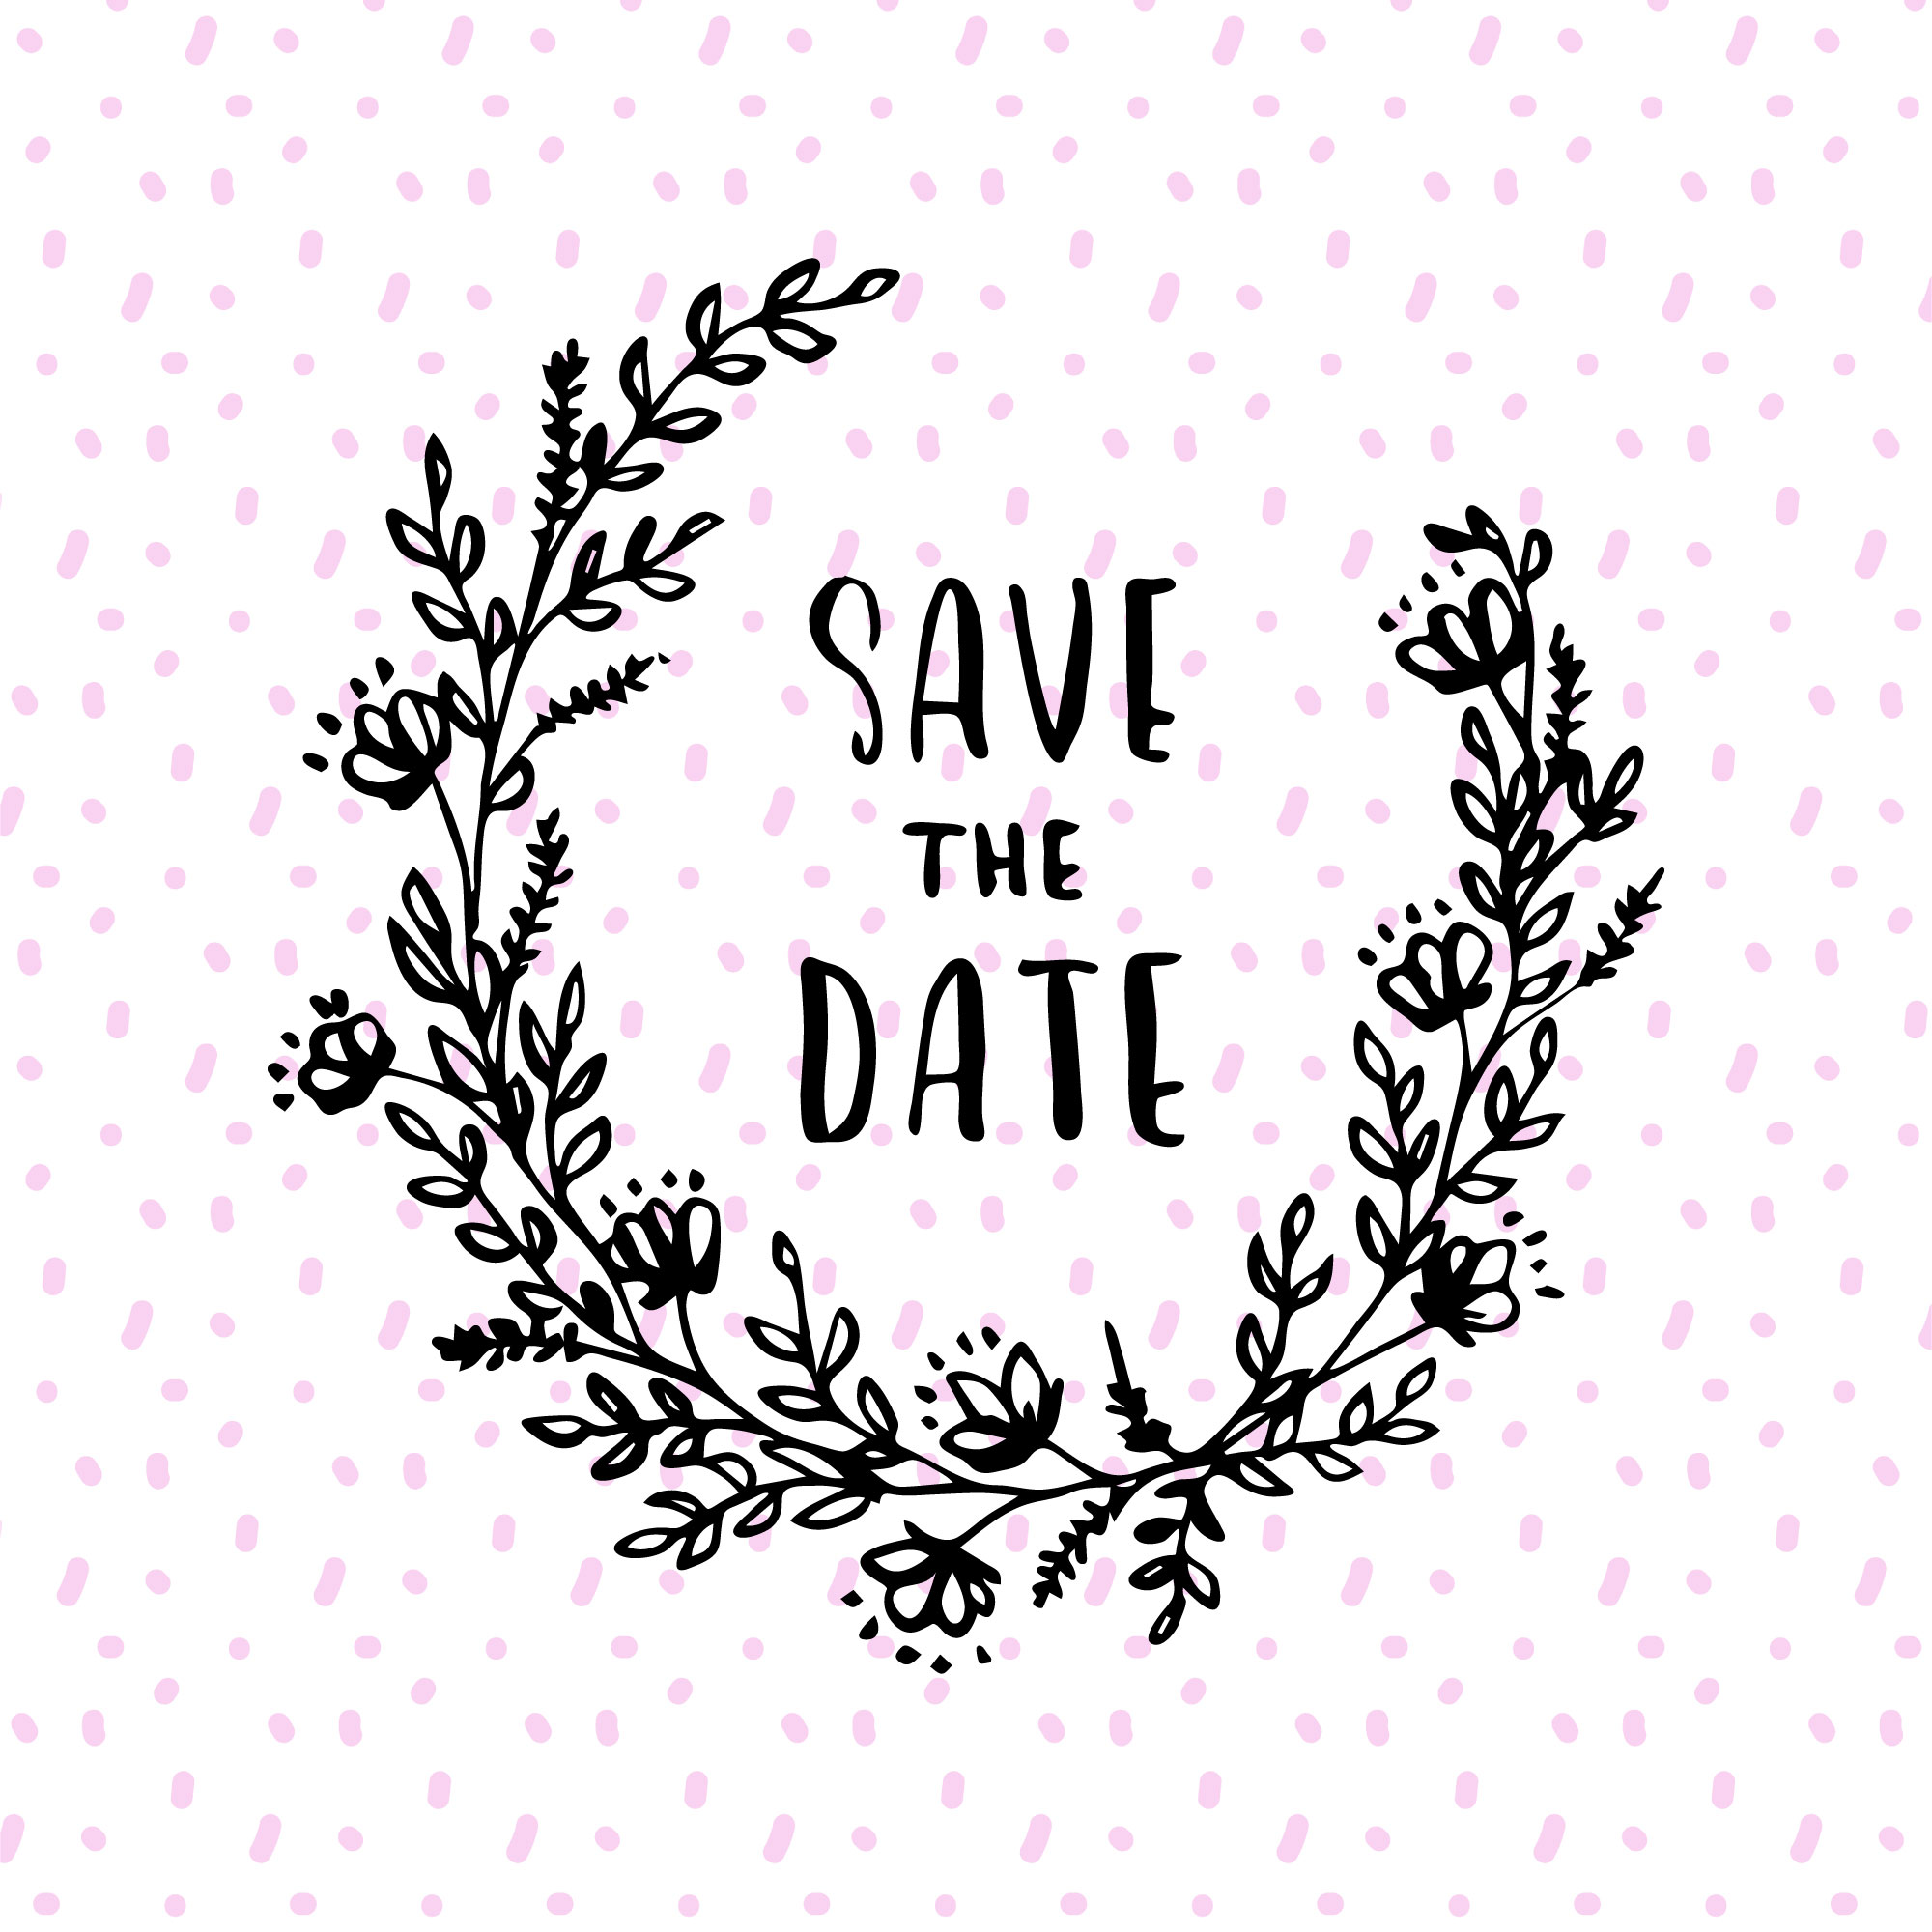 Floral save the date wreath design